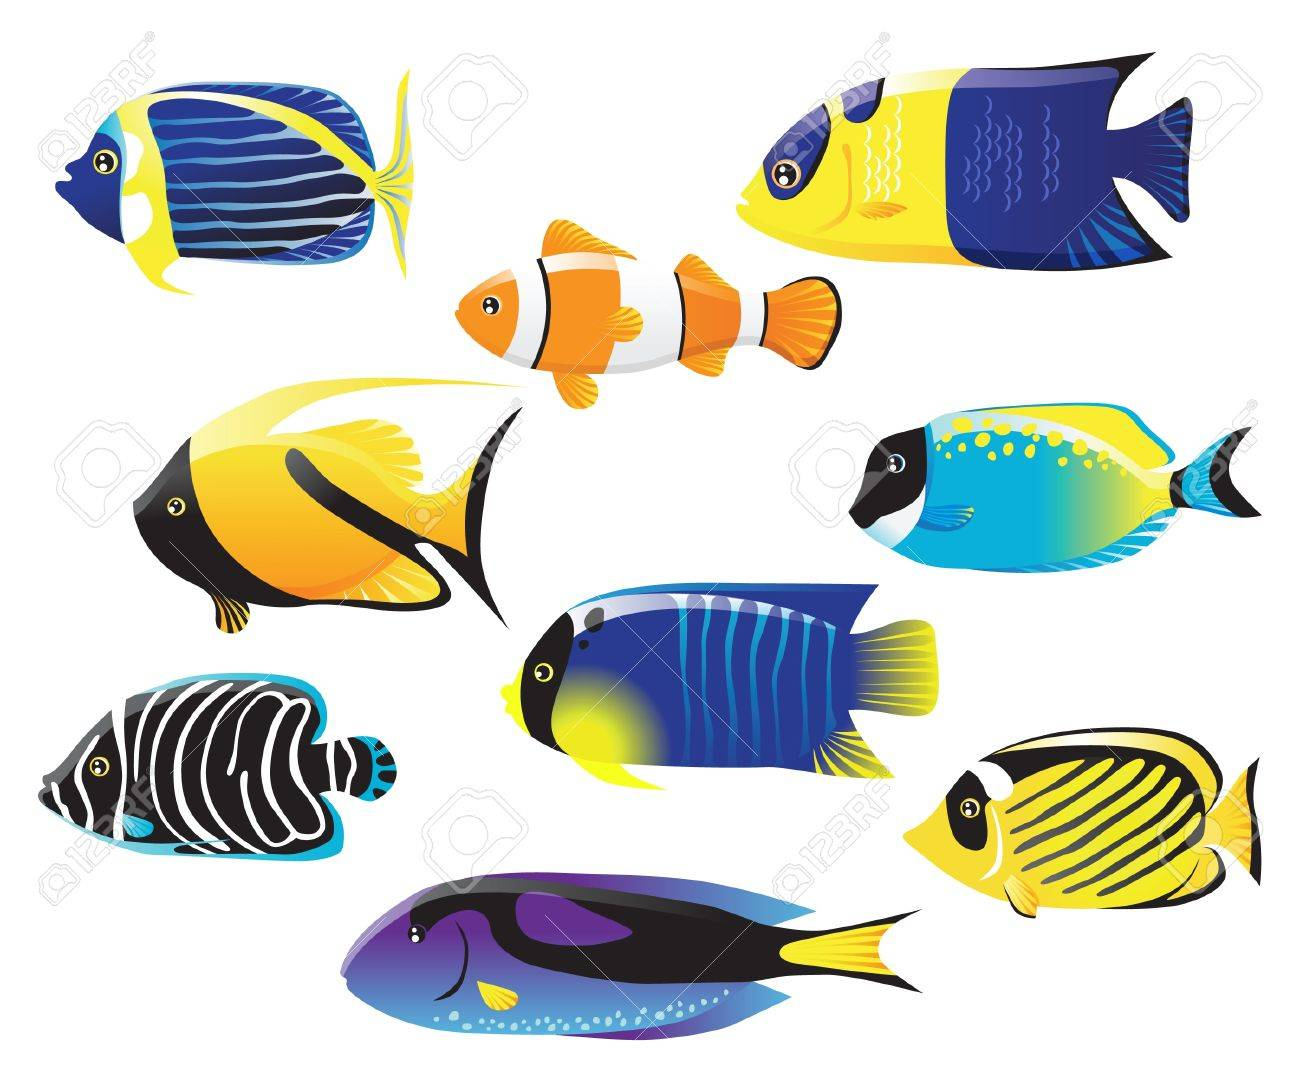 sea fish icons royalty free cliparts vectors and stock